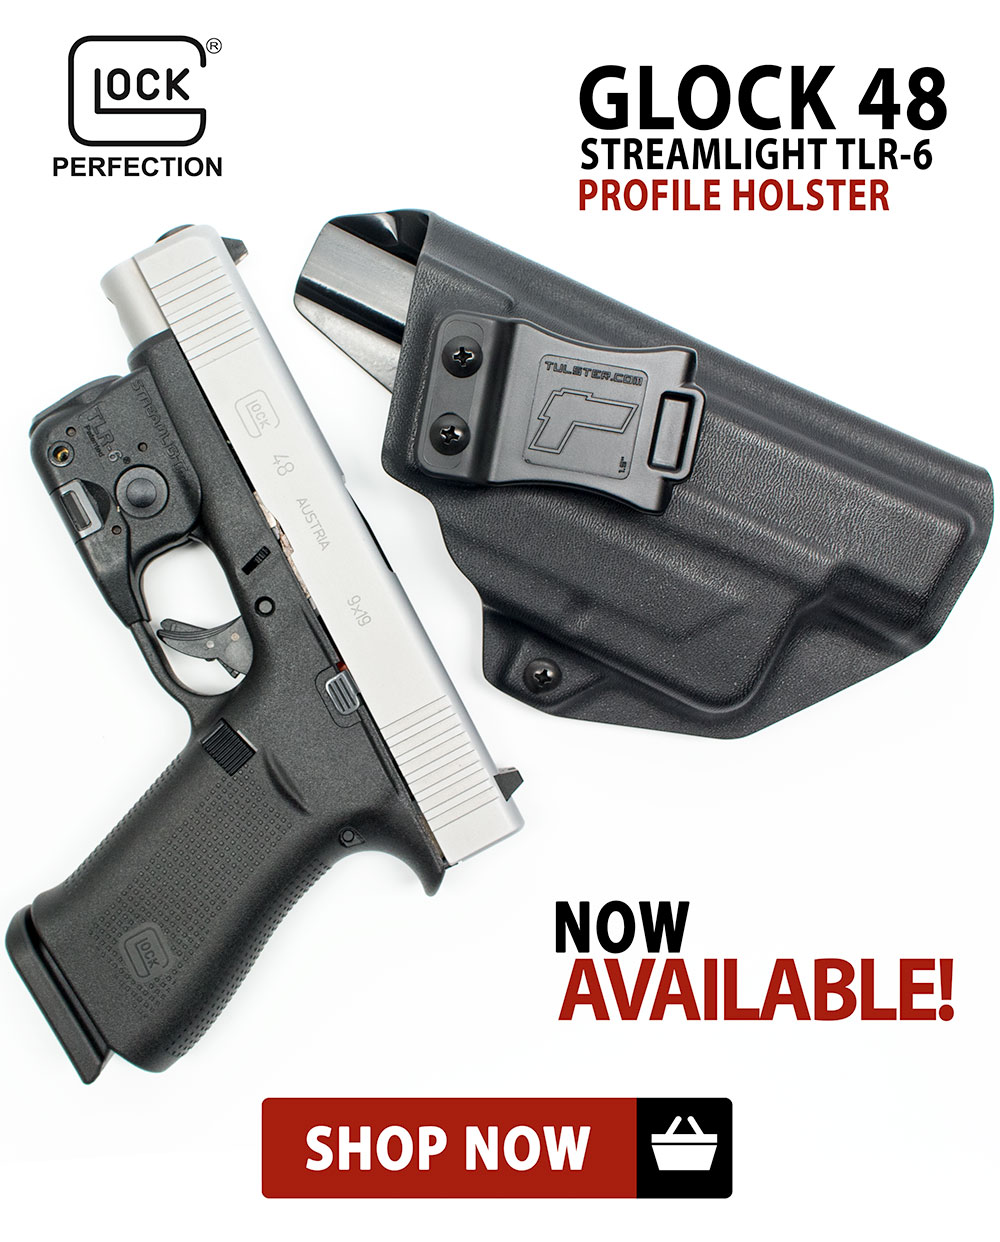 Glock 48 w/TLR-6 Profile Holster are available.